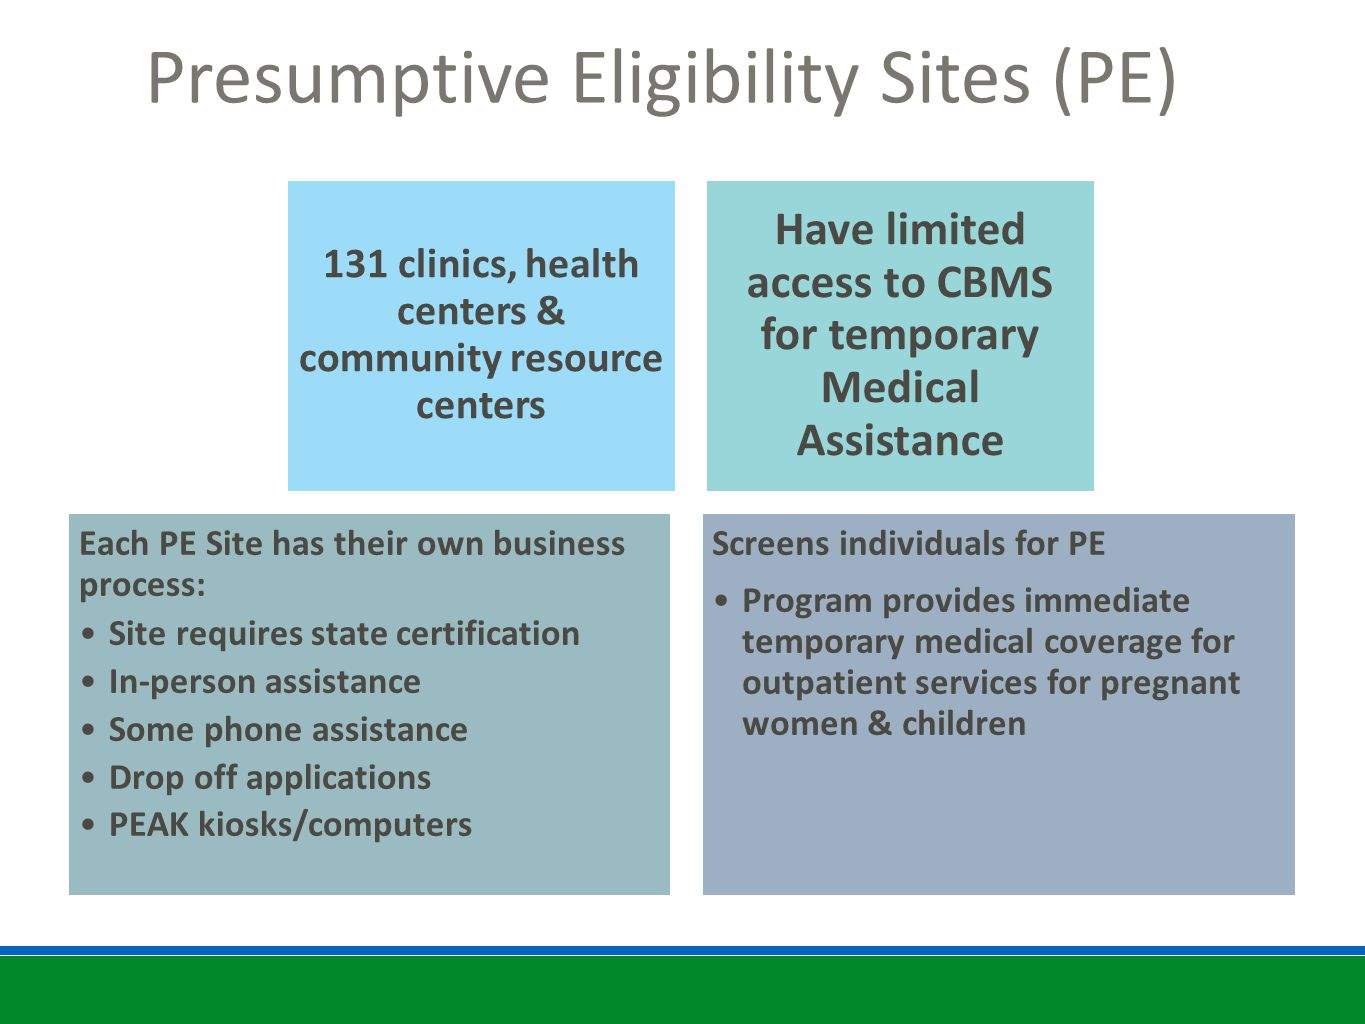 Presumptive Eligibility Sites (PE) 131 clinics, health centers & community resource centers Have limited access to CBMS for temporary Medical Assistance Each PE Site has their own business process: Site requires state certification In-person assistance Some phone assistance Drop off applications PEAK kiosks/computers Screens individuals for PE Program provides immediate temporary medical coverage for outpatient services for pregnant women & children